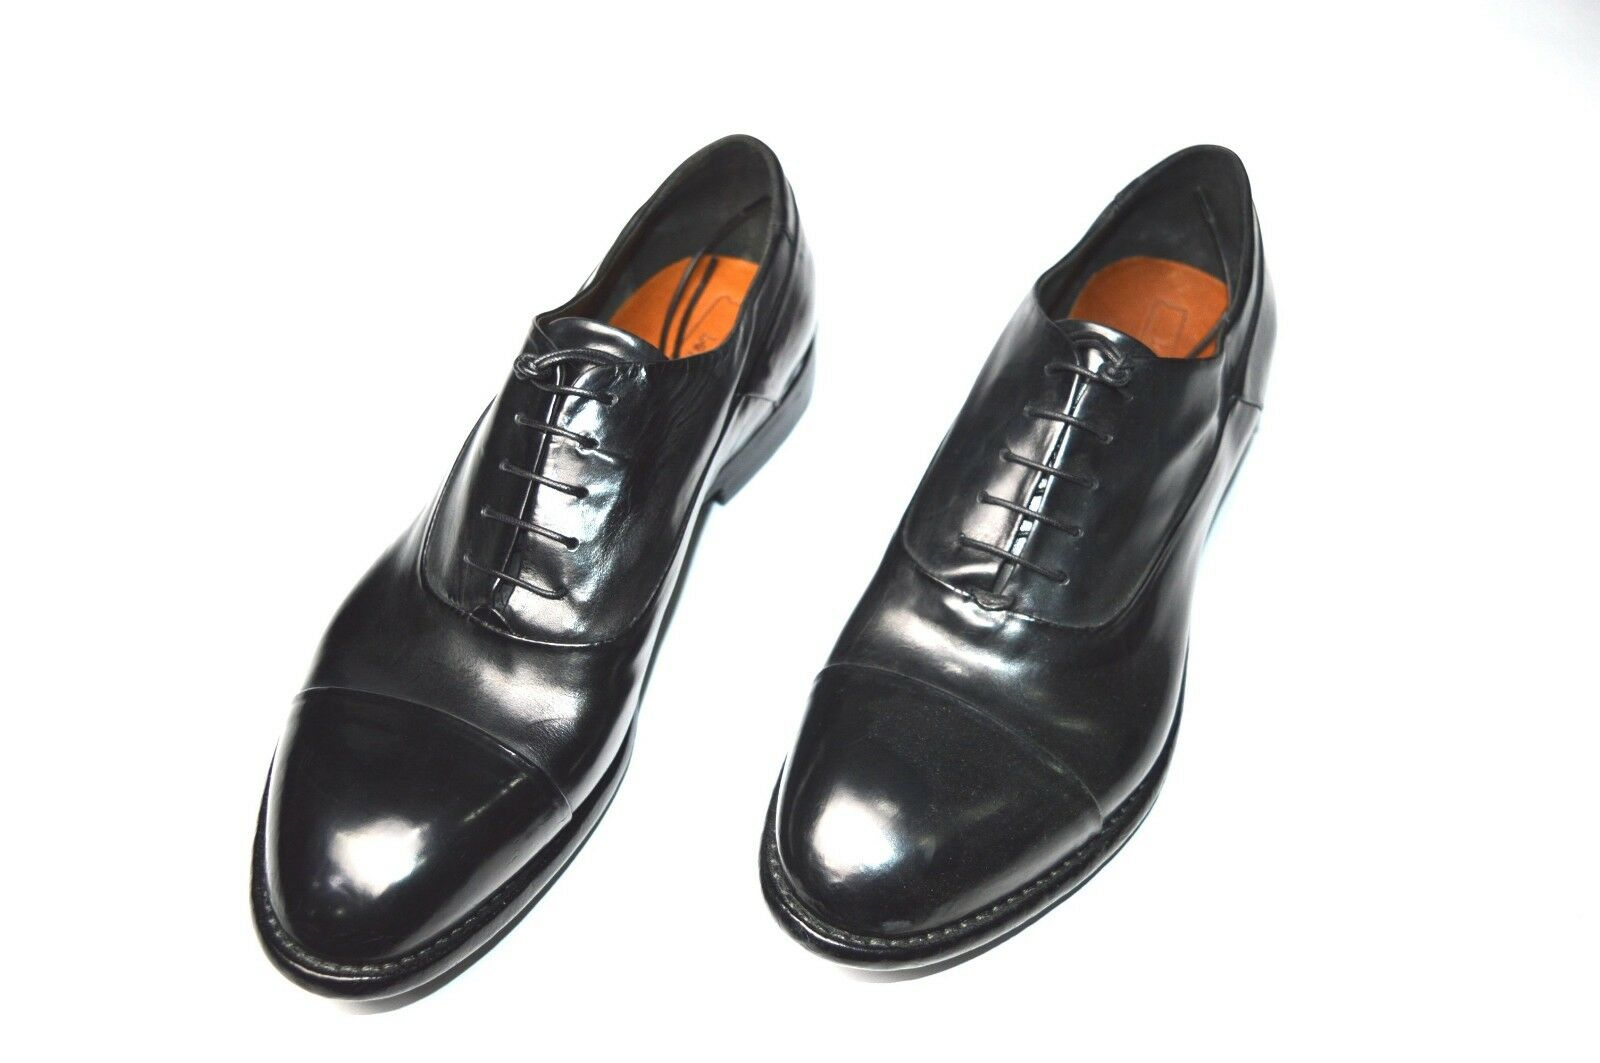 NEW LEMARGO Dress Leather shoes  Size Eu 42 Us 9 (CodLM4)